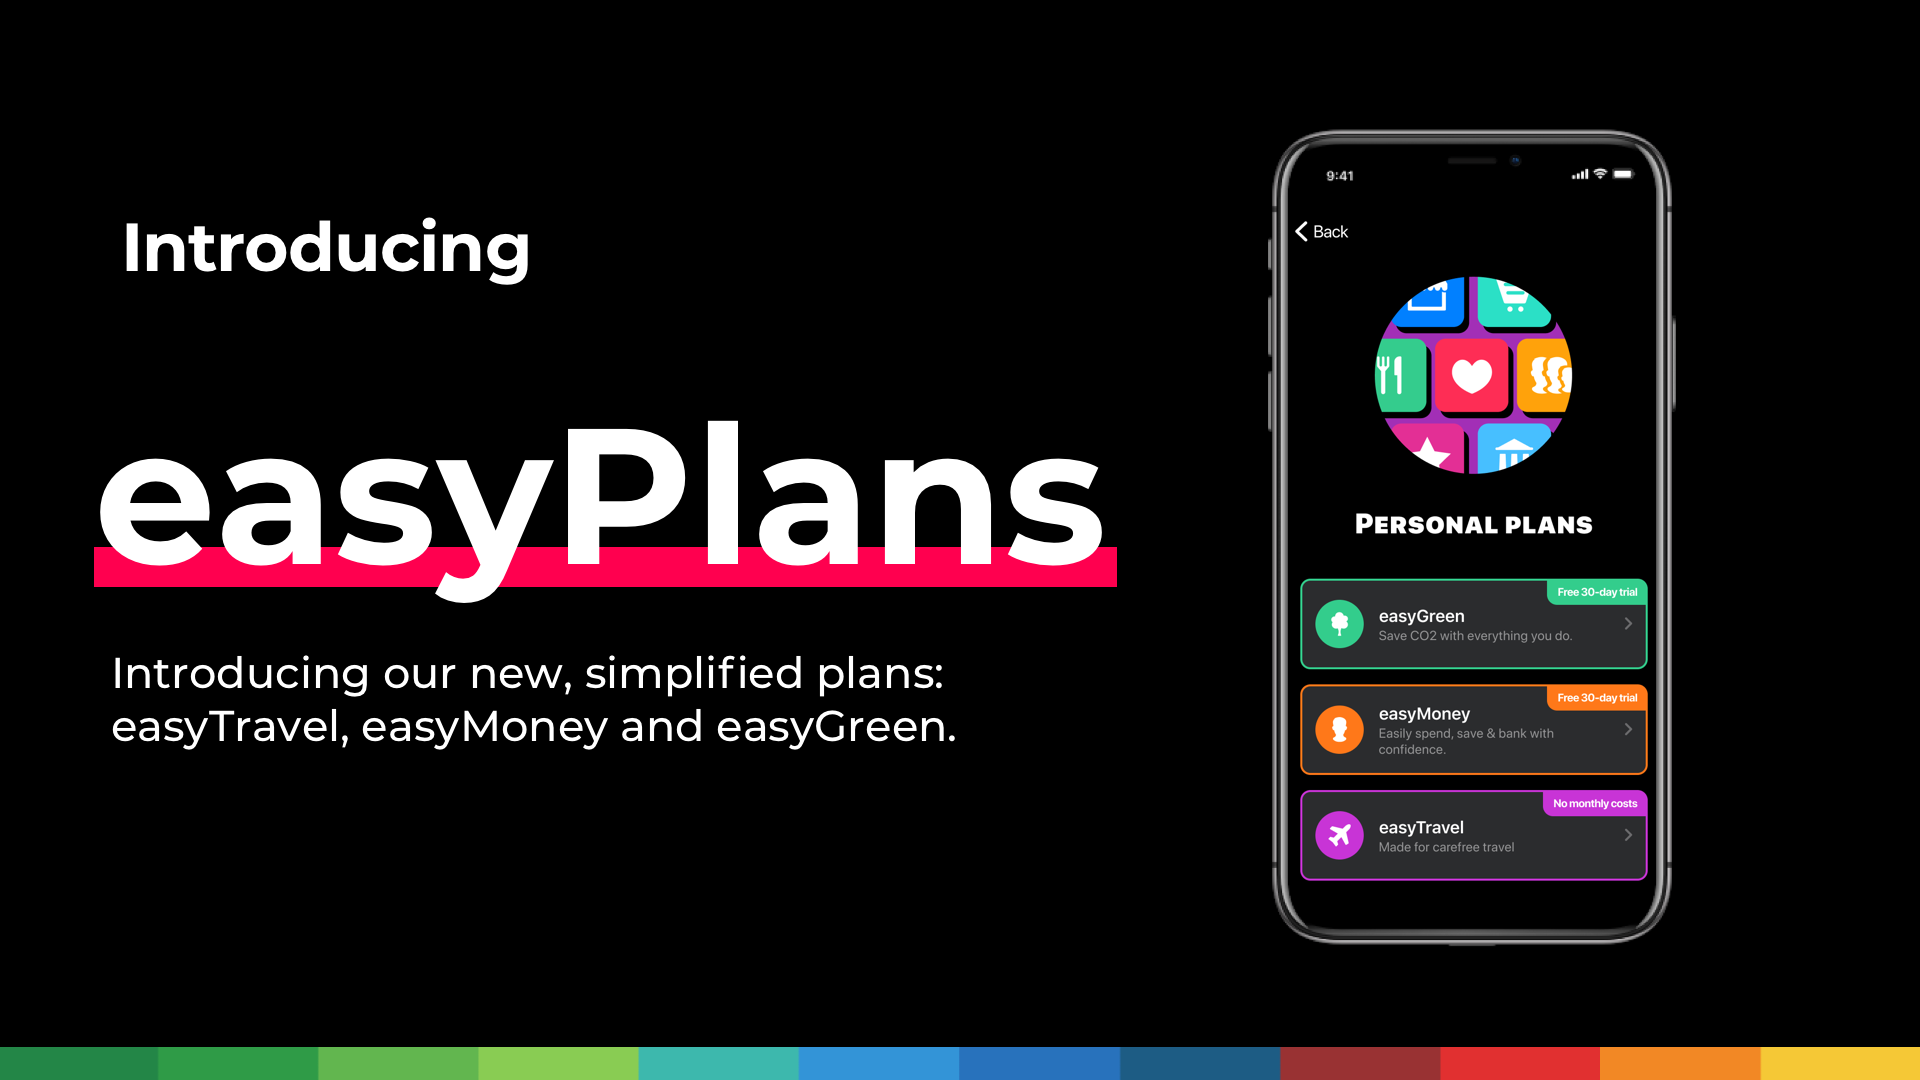 Introducing Easy Plans banner